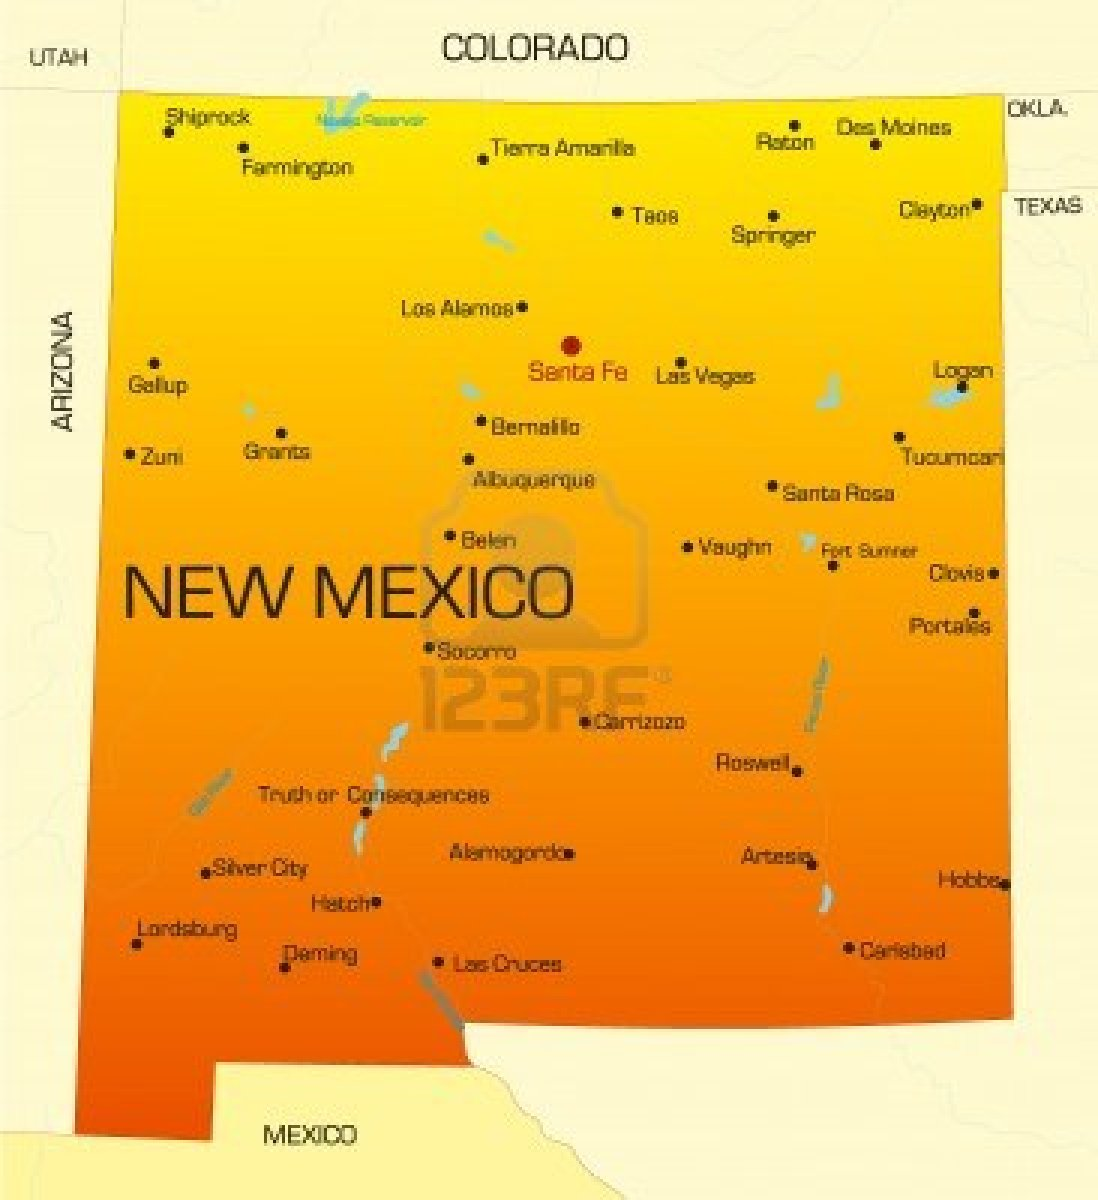 statehood of new mexico Colonized by spain, the land that is now new mexico became us territory as part oft he gadsen purchase in 1853, though new mexico did not become a us state until 1912.